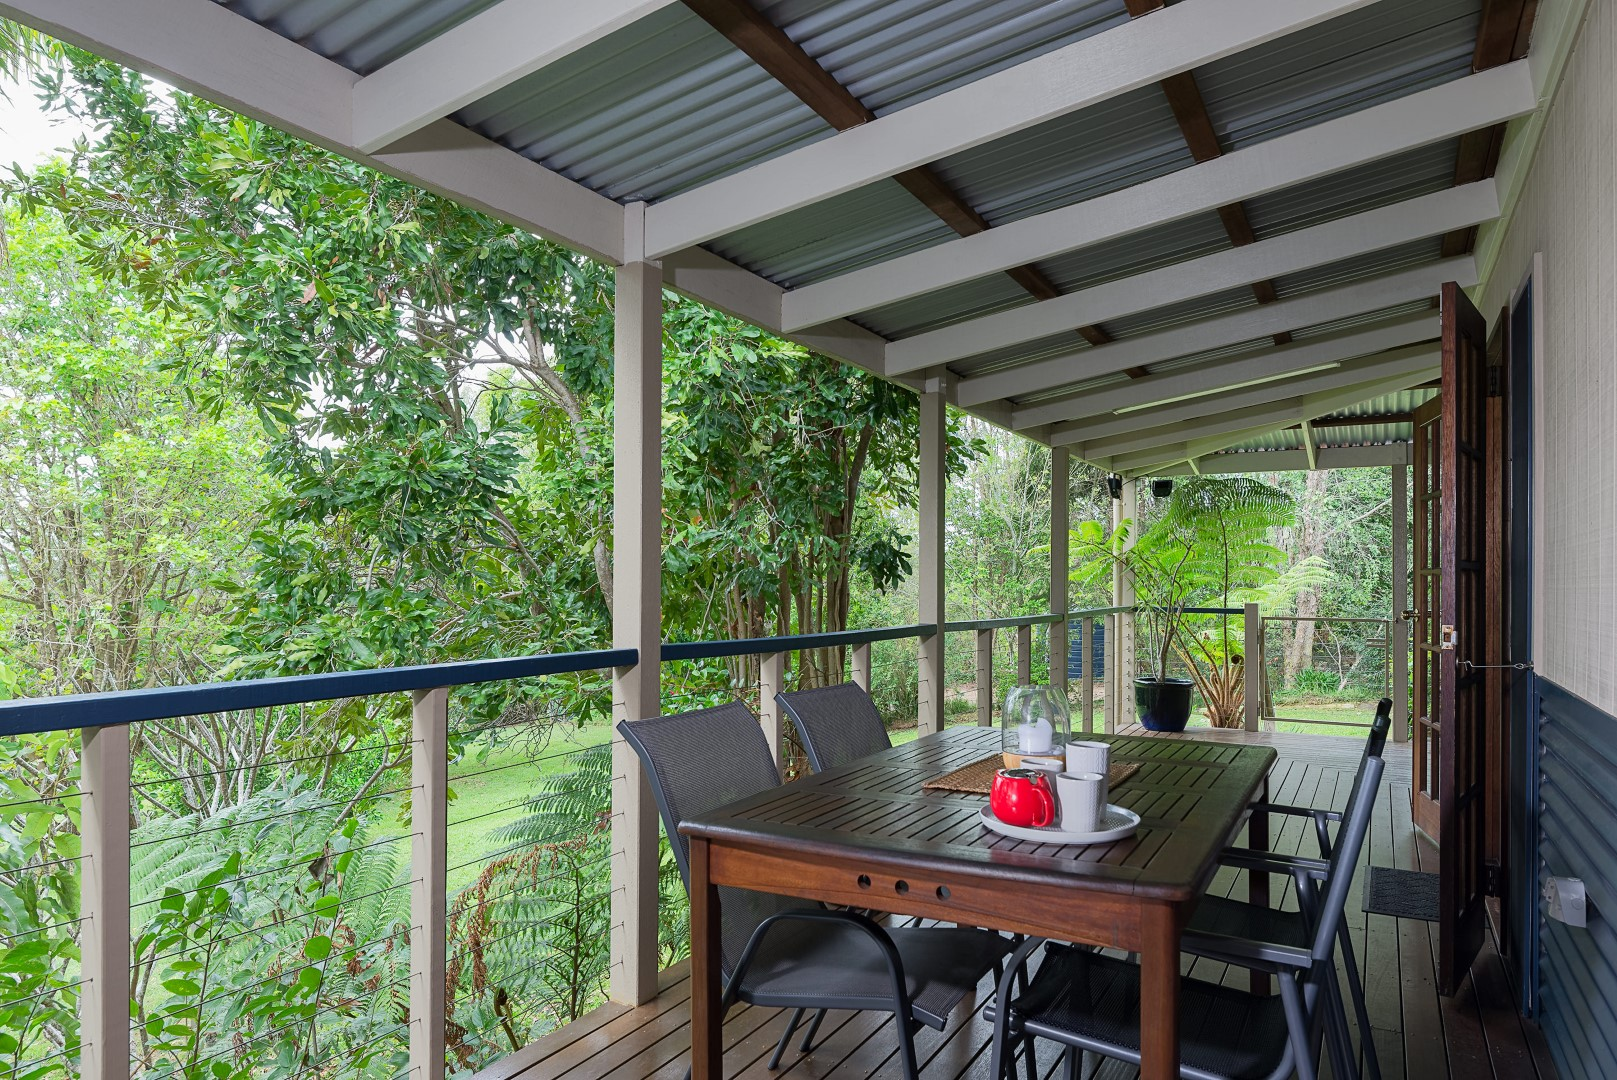 Jacaranda_Cottages_Maleny_Chalet_Deck_2